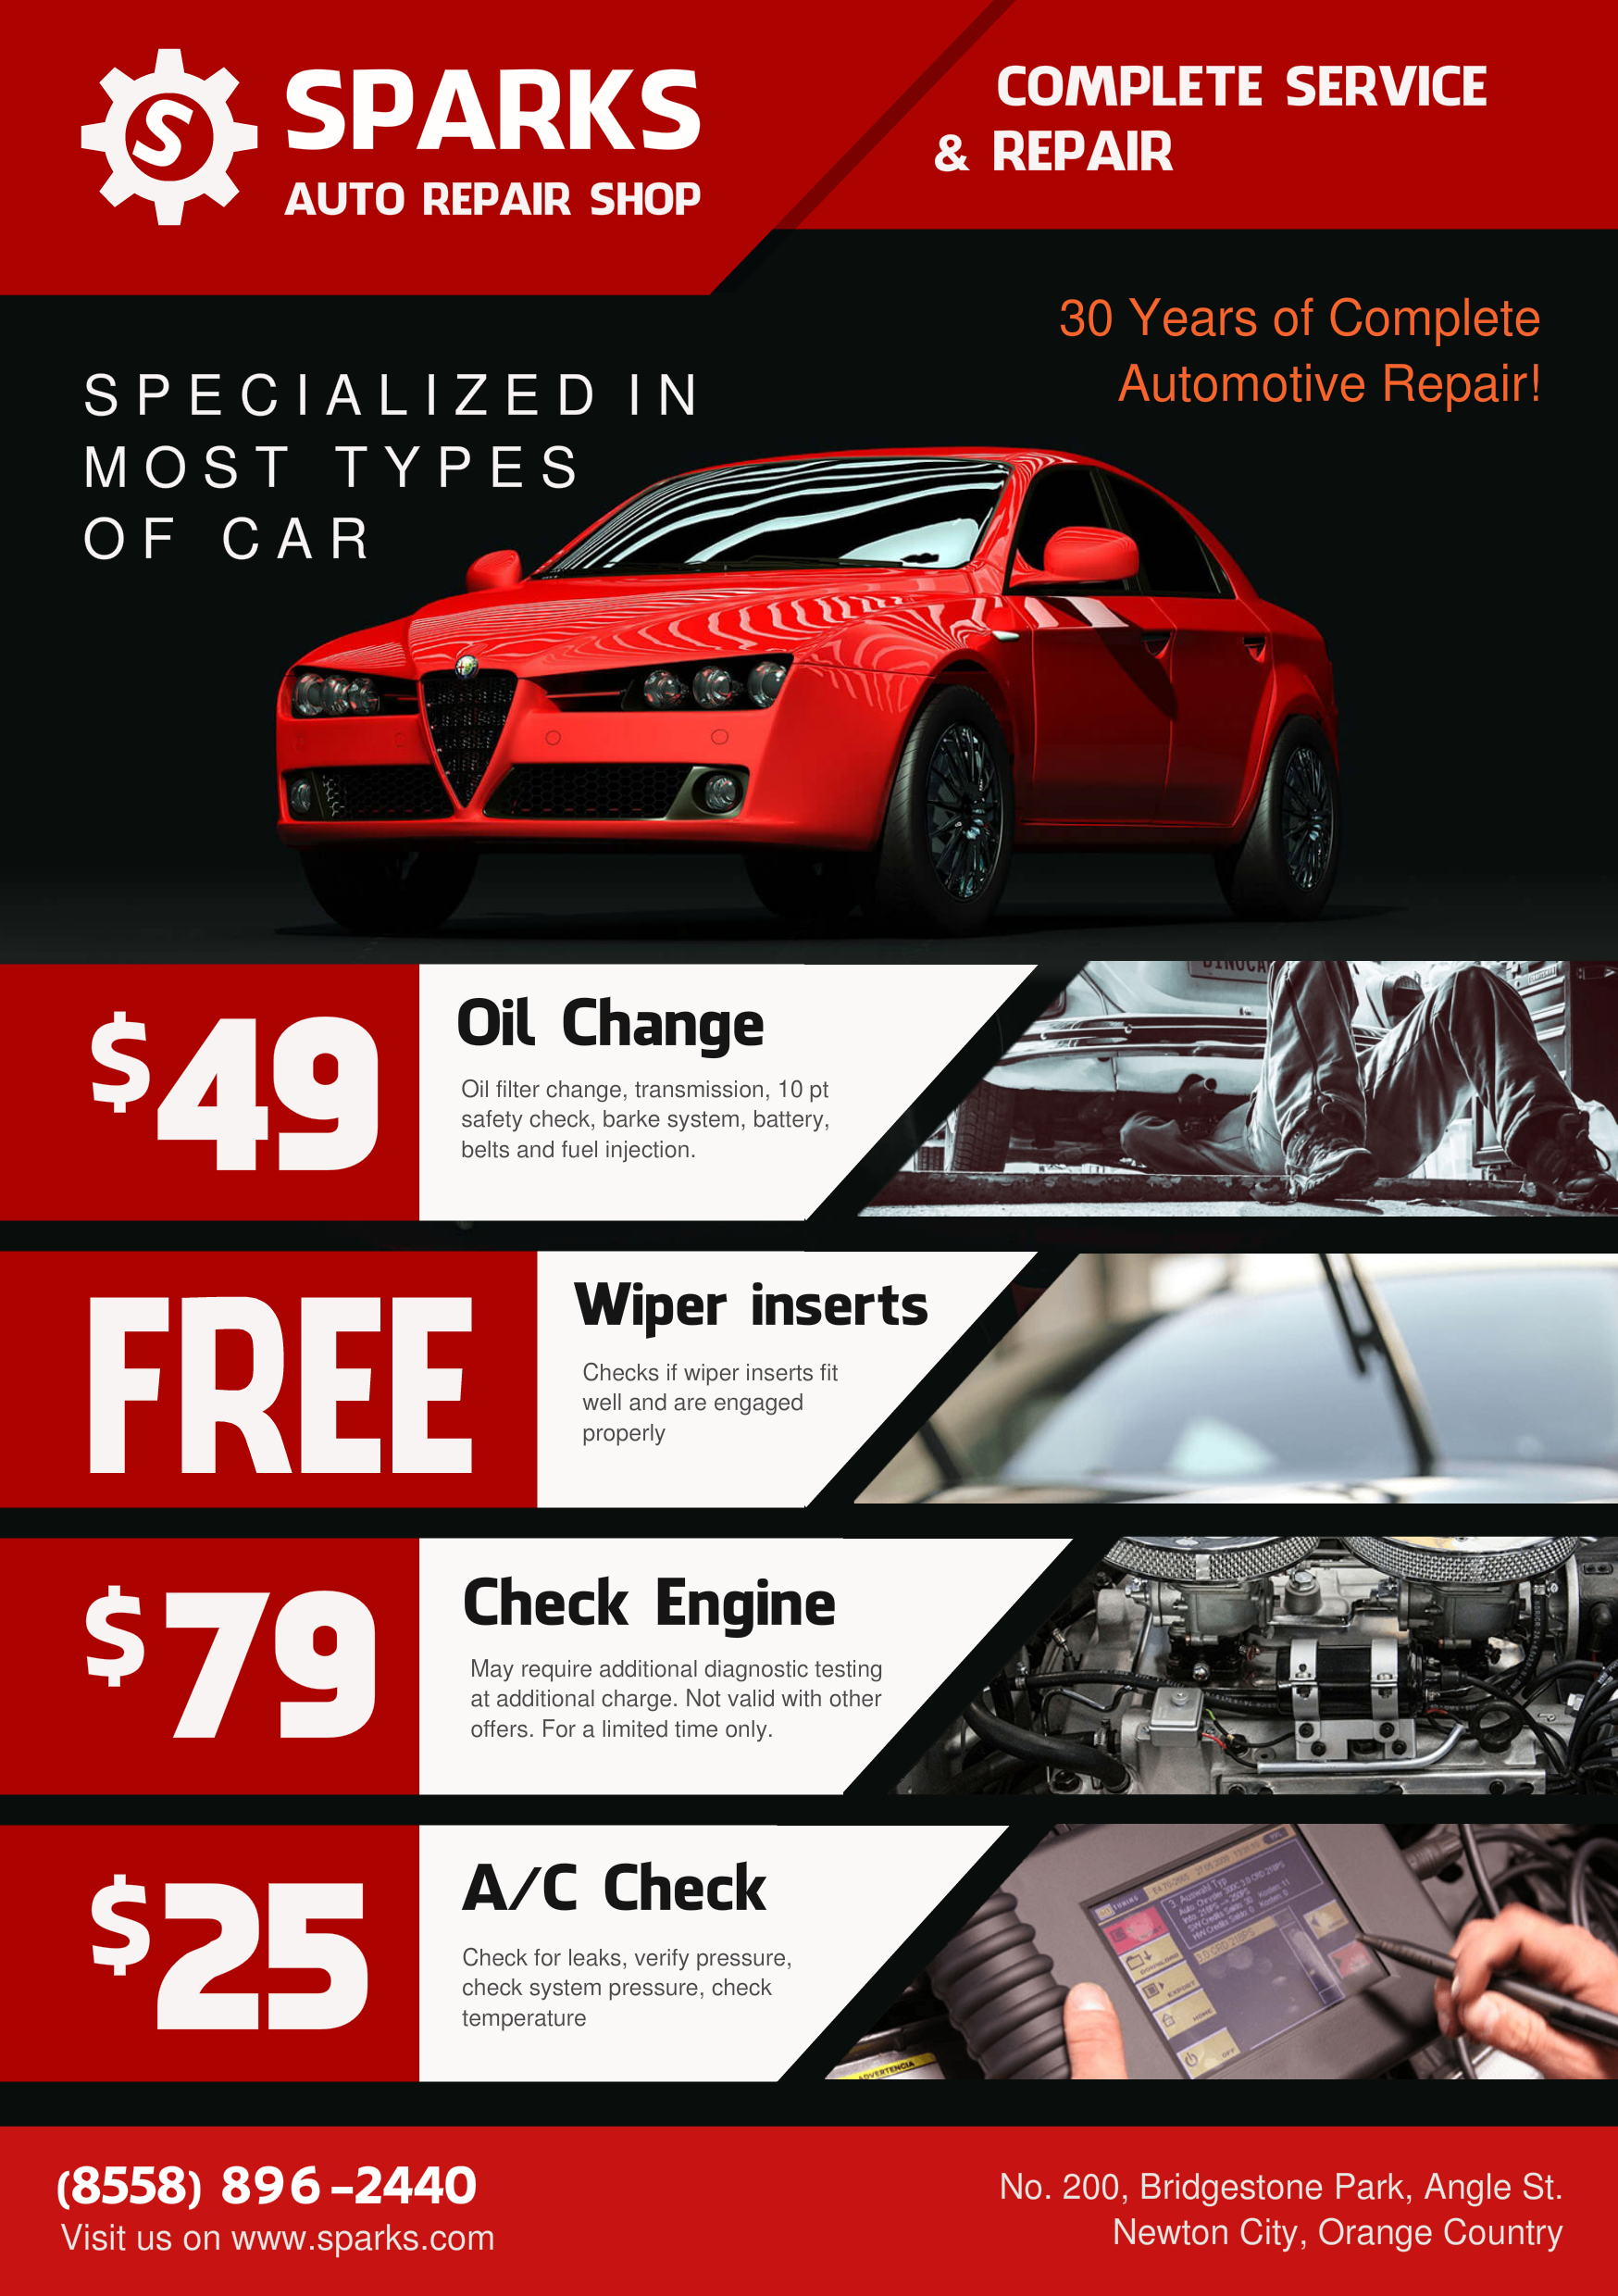 Template For Flyer A Auto Repair Shop Theme Design Ideas For - Blank car show flyer